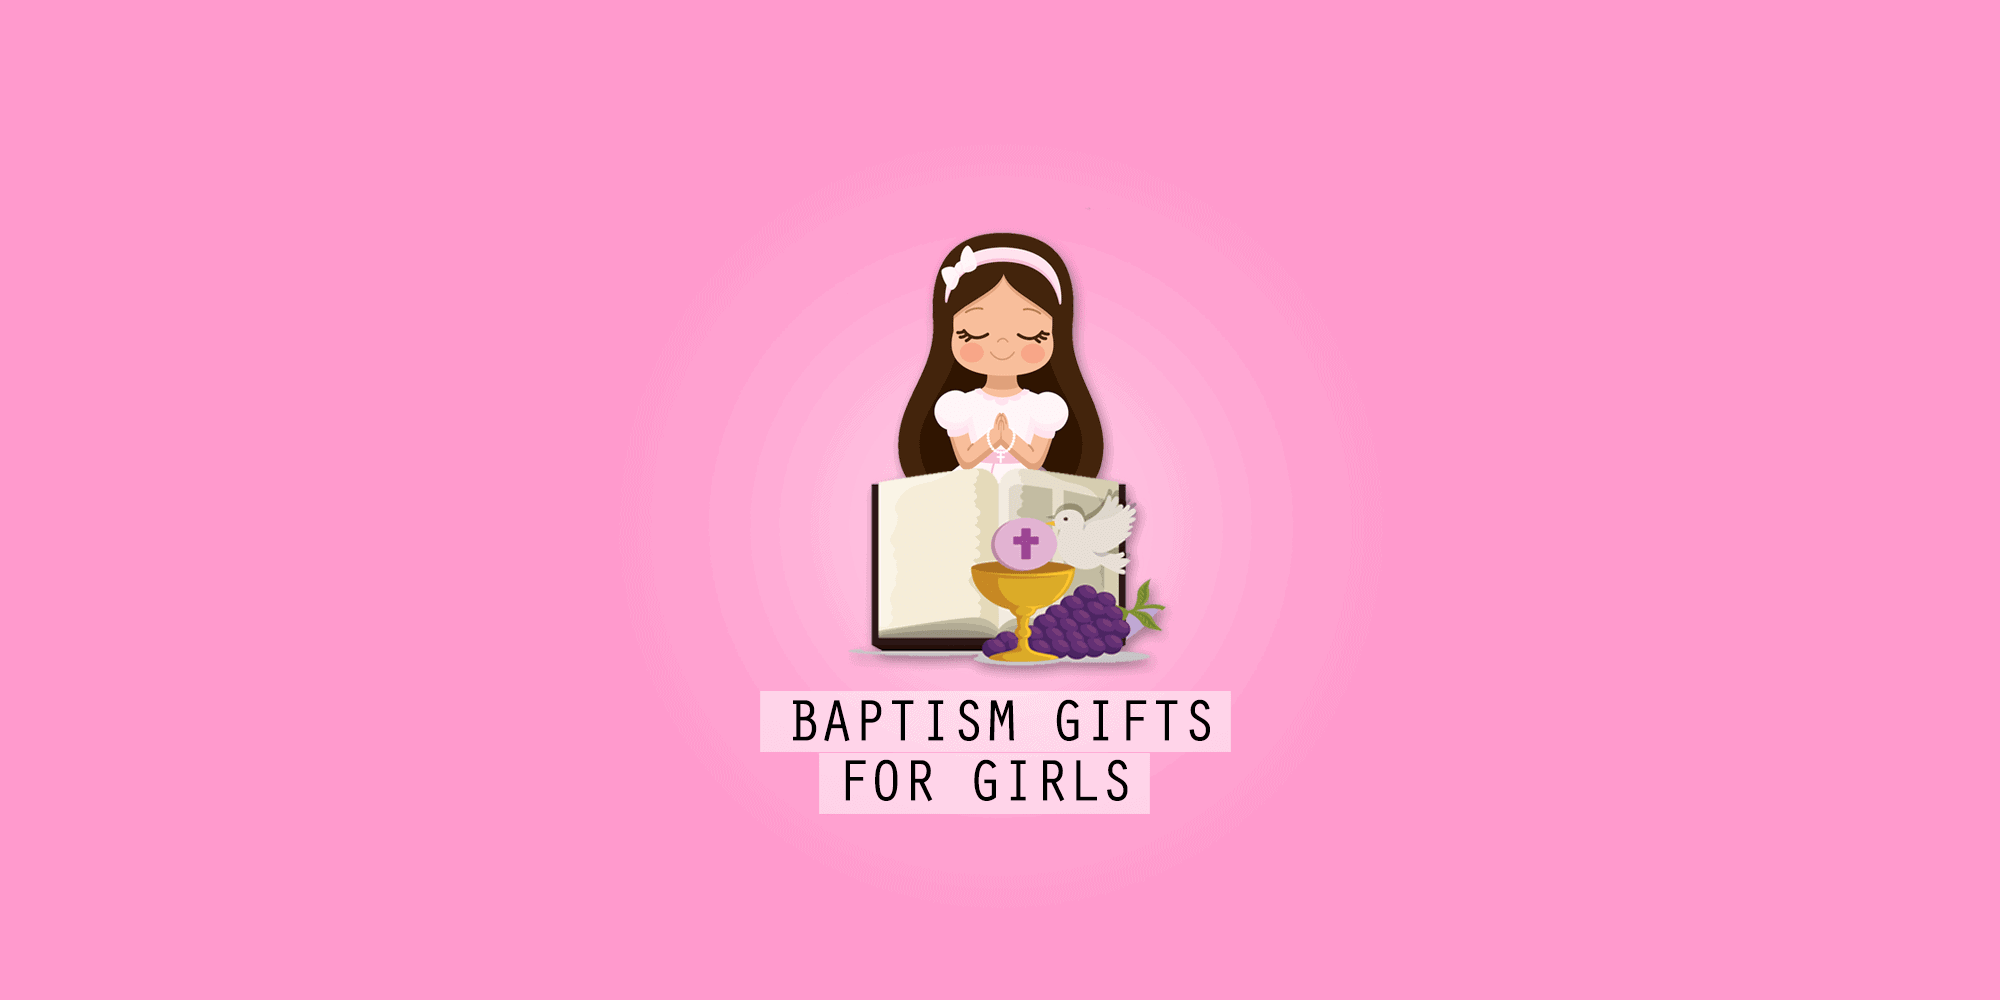 39 Unique Baptism Gifts for Girls That Make Them Feel Blessed (2020)